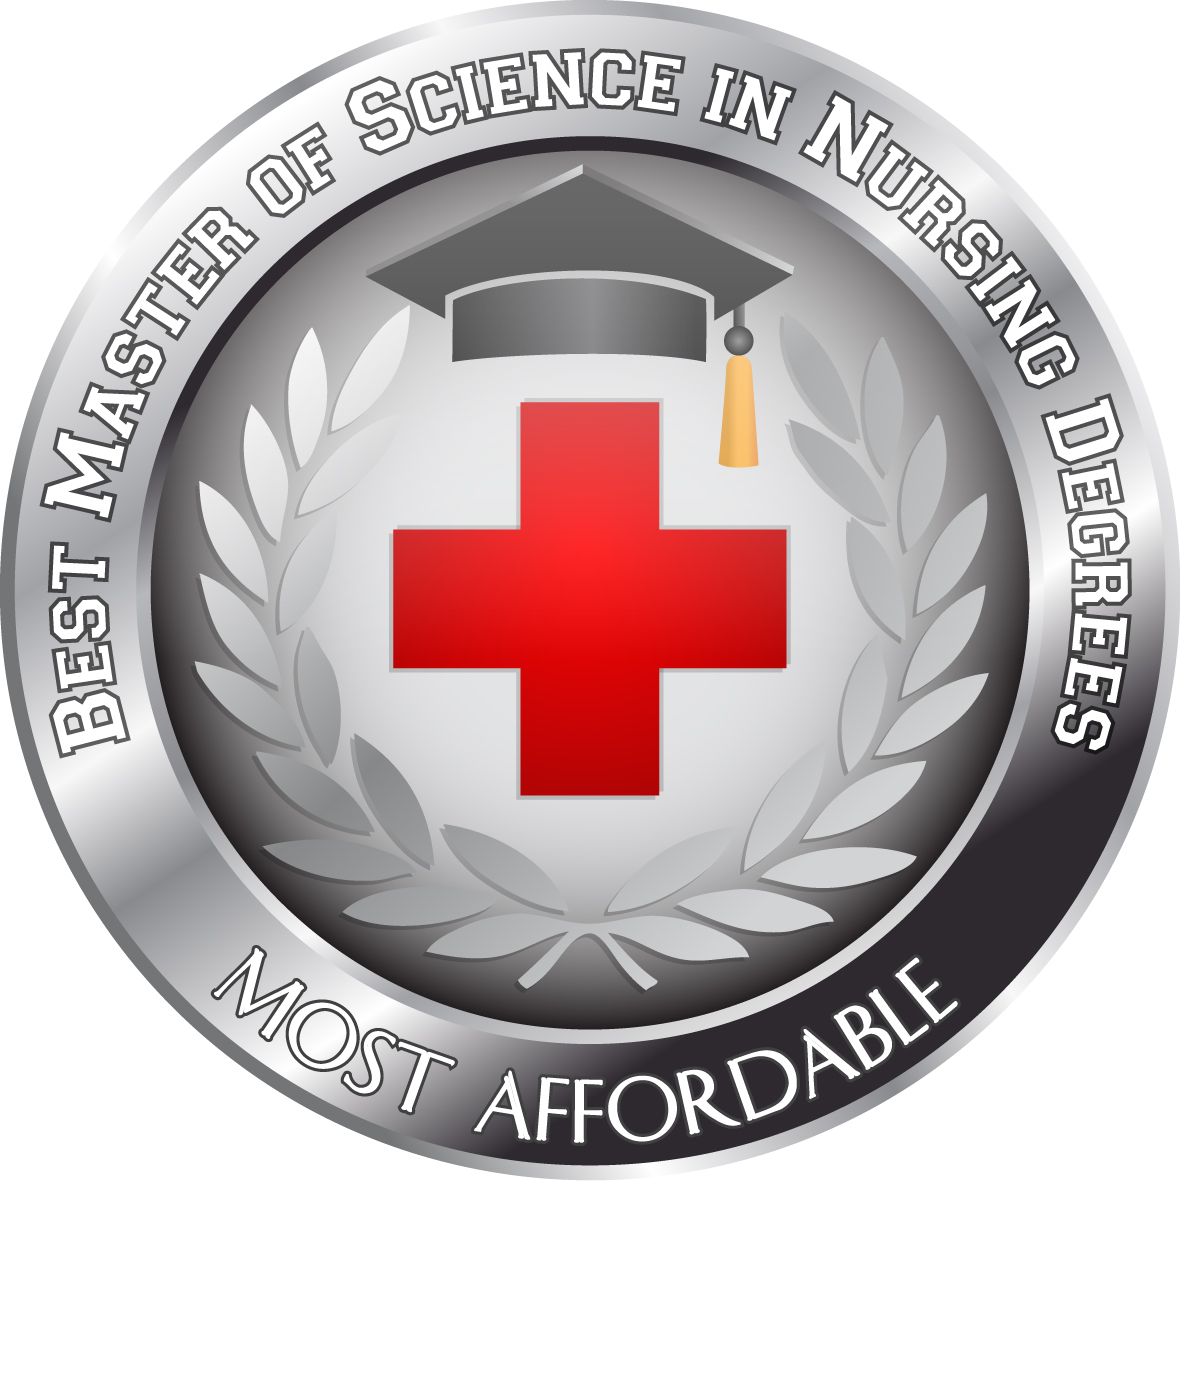 Good colleges to go to to get a bachelors in nursing in Oklahoma?